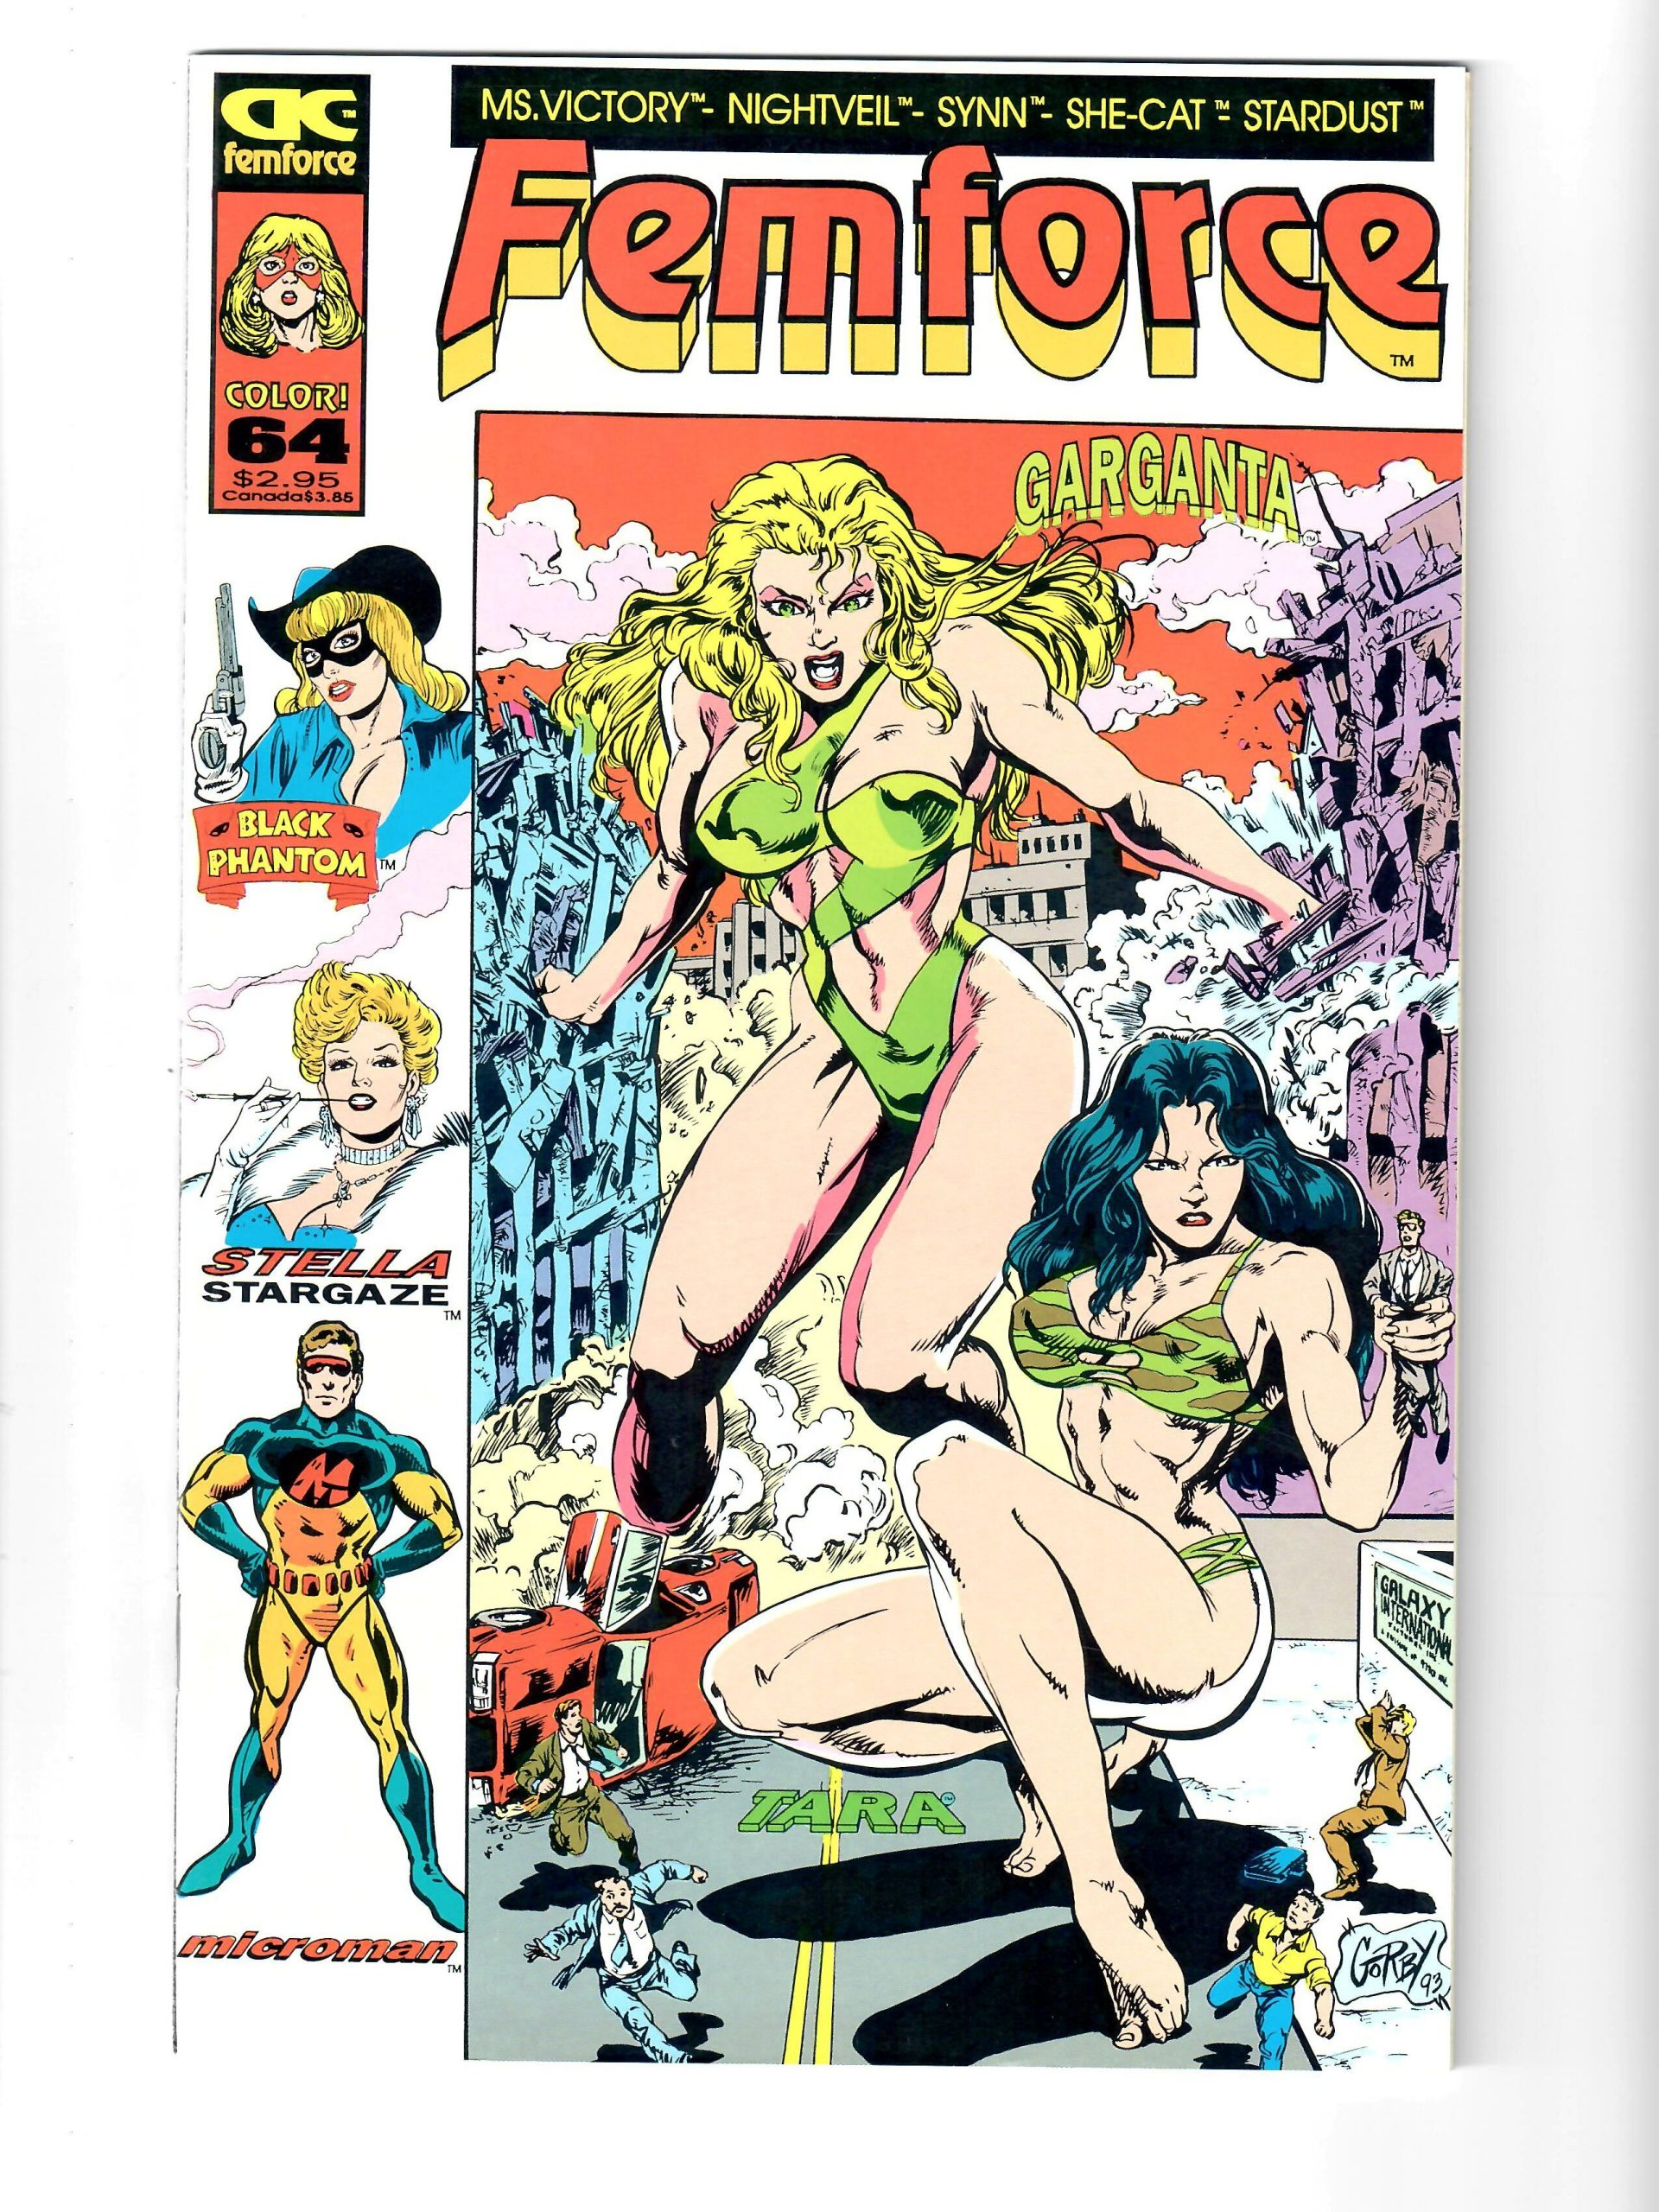 AC COMICS FEMFORCE #64 1984 COMIC #157854-6